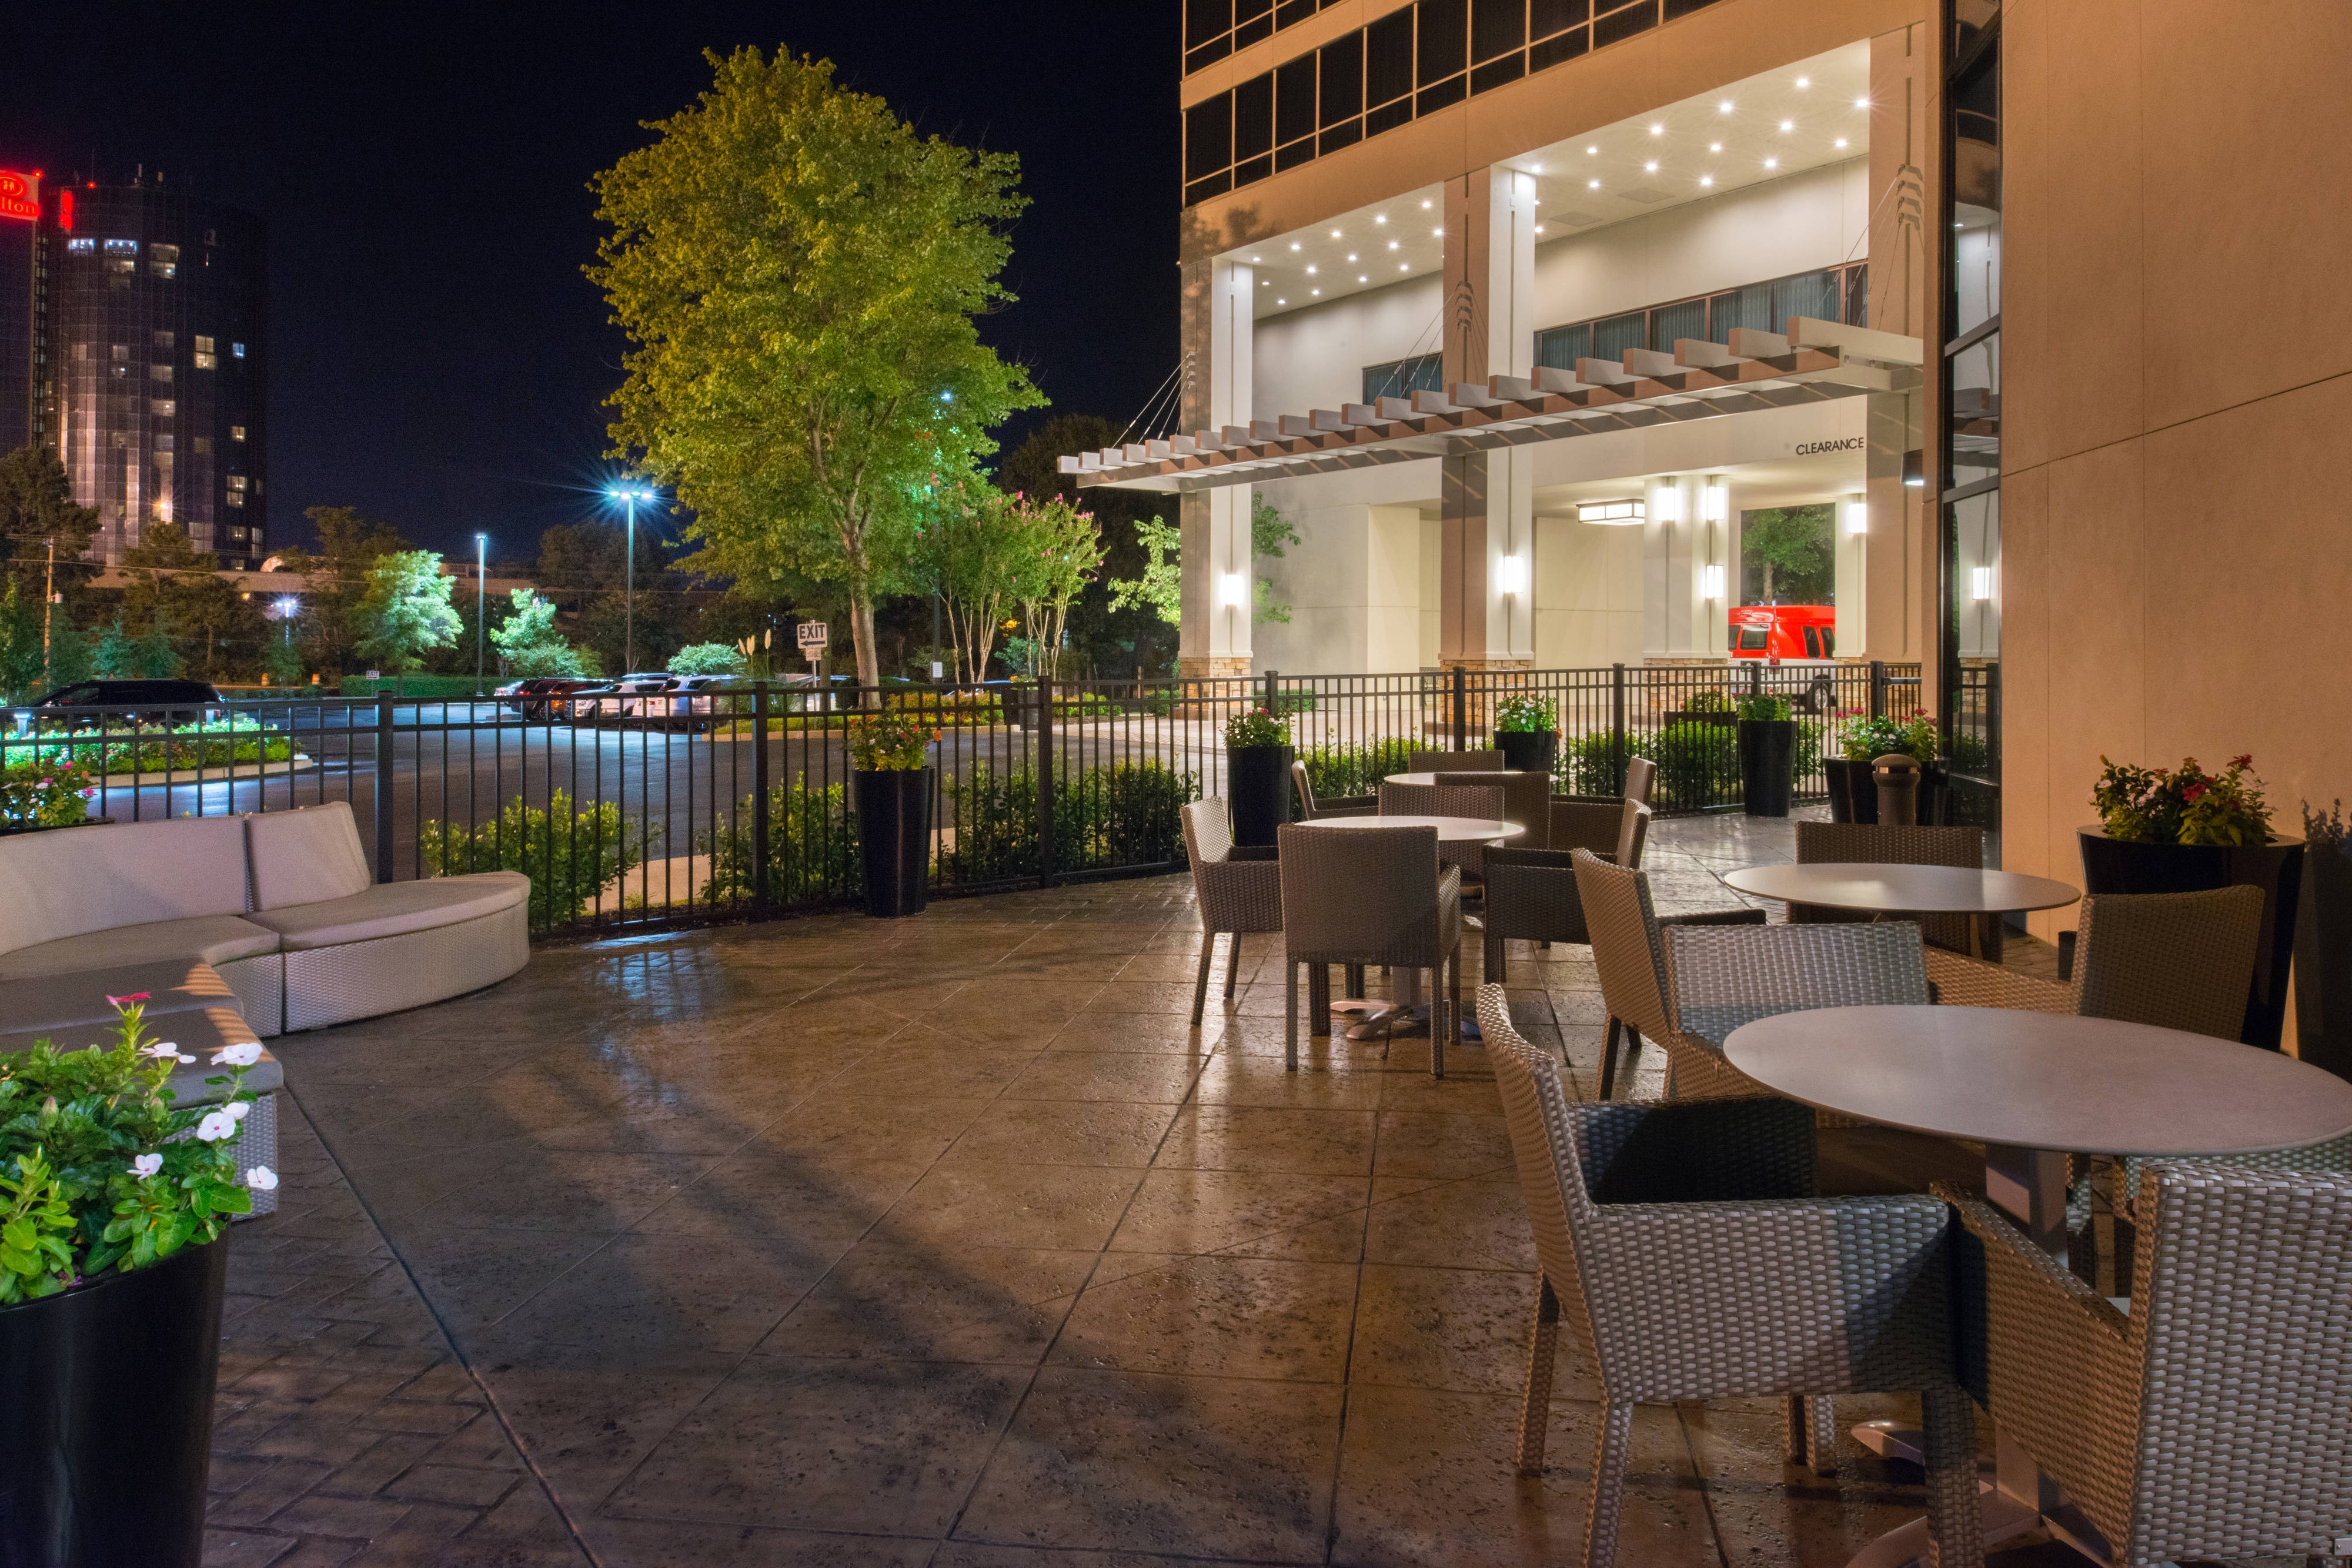 memphis hotel outdoor patio